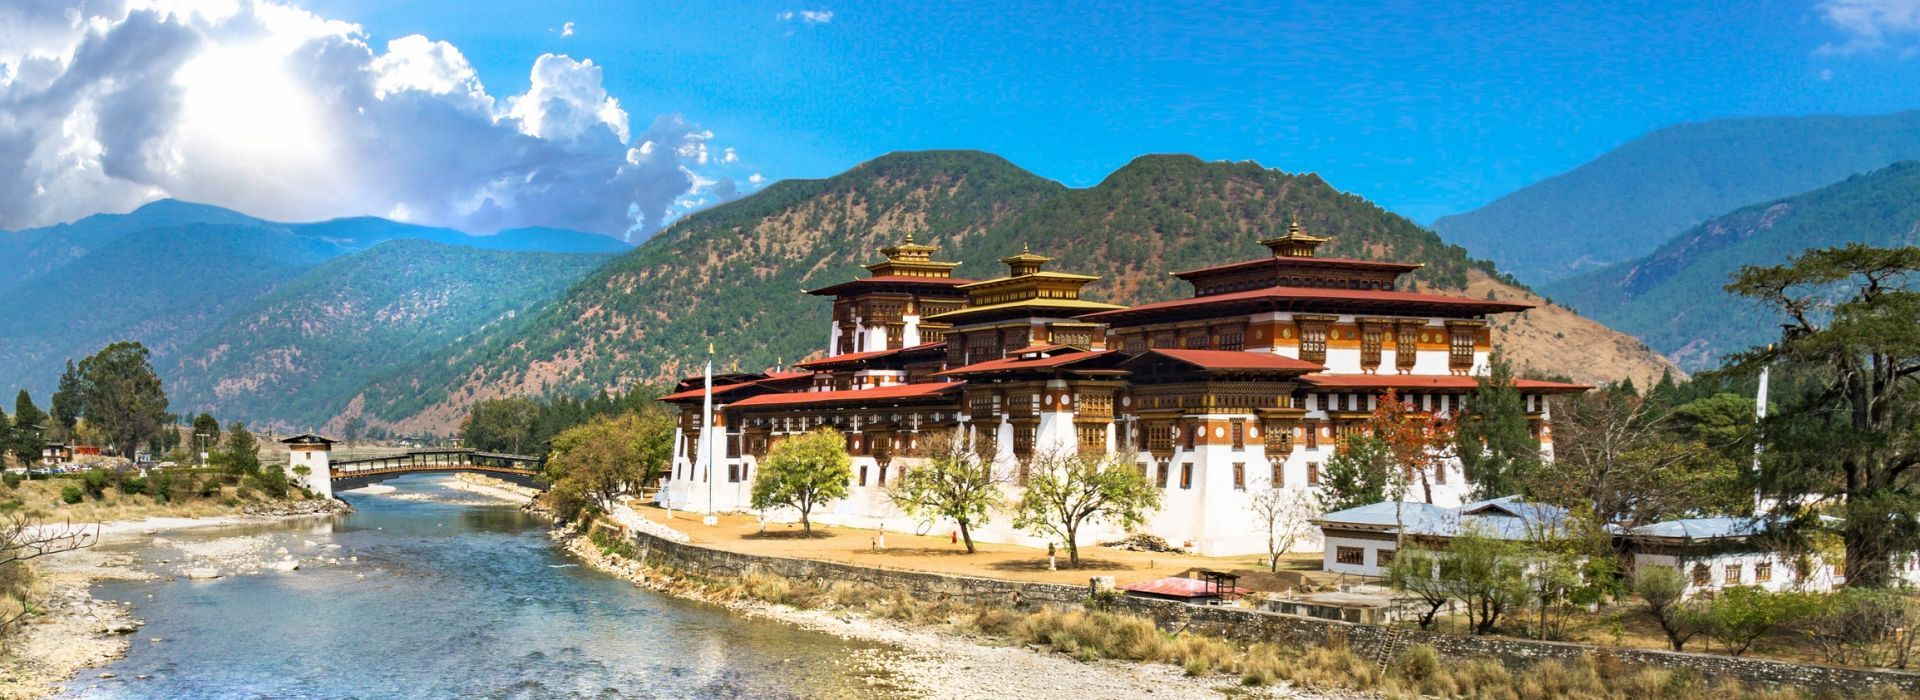 Wildlife, landscapes and nature Tours in Tiger's Nest Monastery